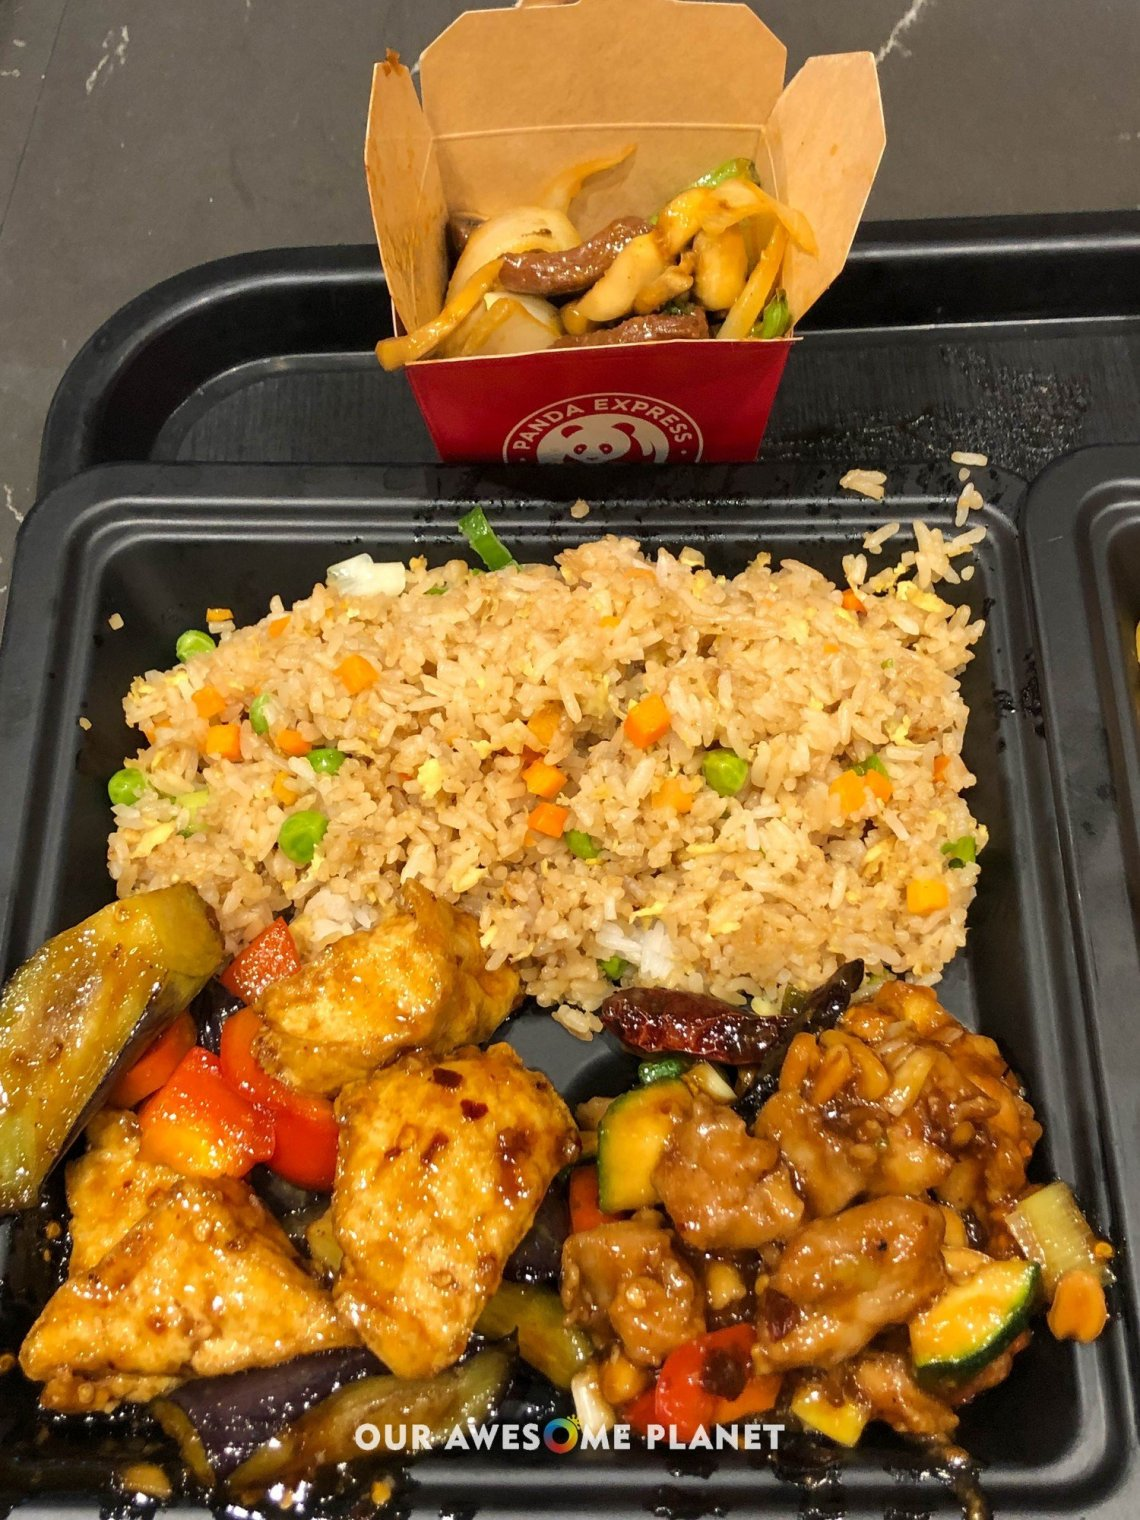 Spicy Bigger Plate Meal Size